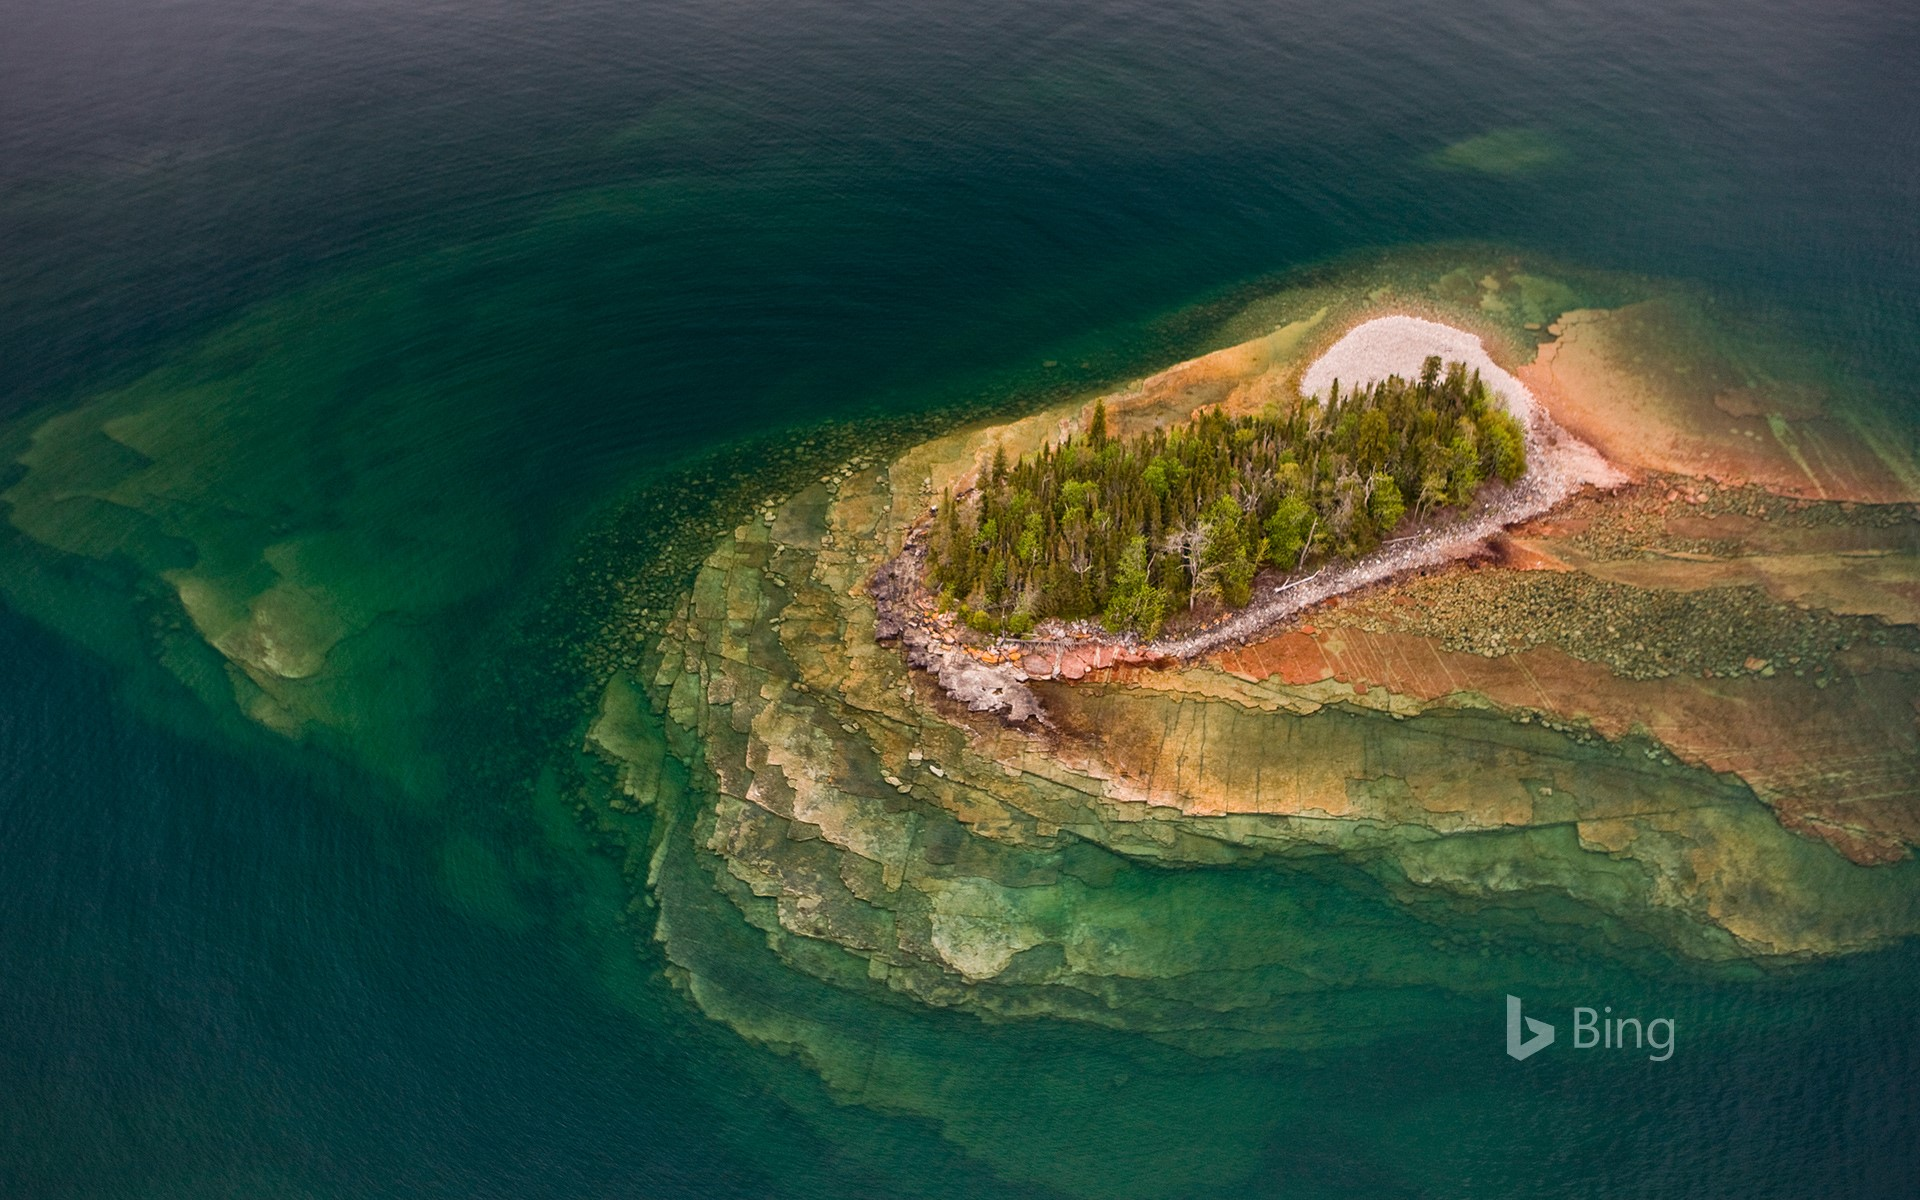 Aerial view of small rocky islands in Lake Superior, Thunder Bay, Ontario, Canada